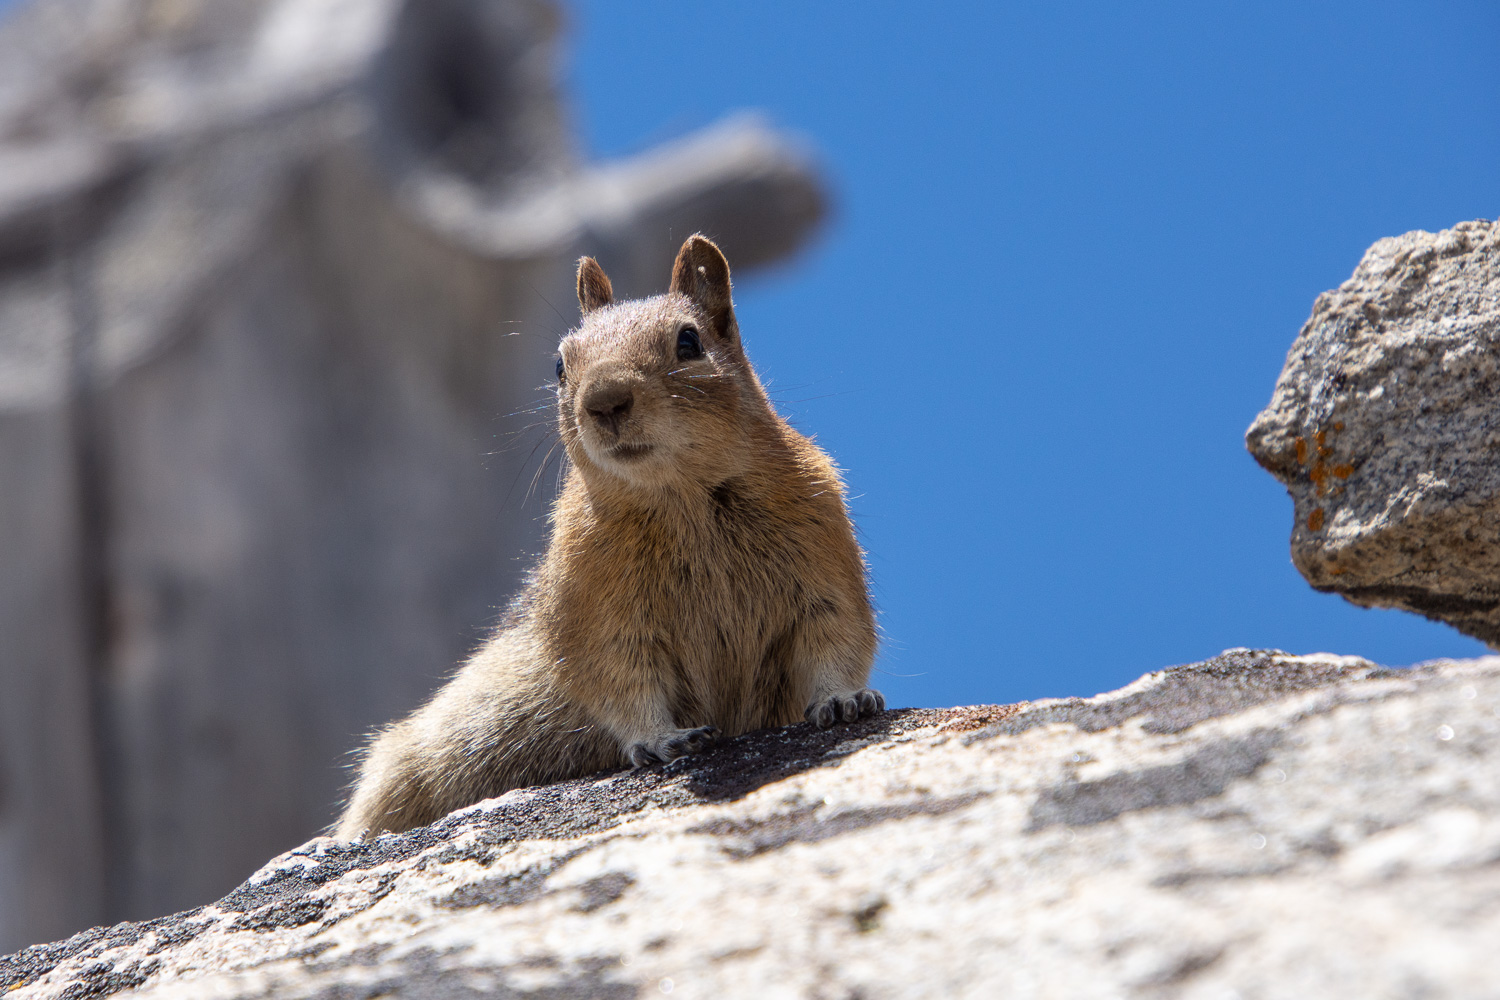 Chipmunk in Payette National Froest, Idaho.